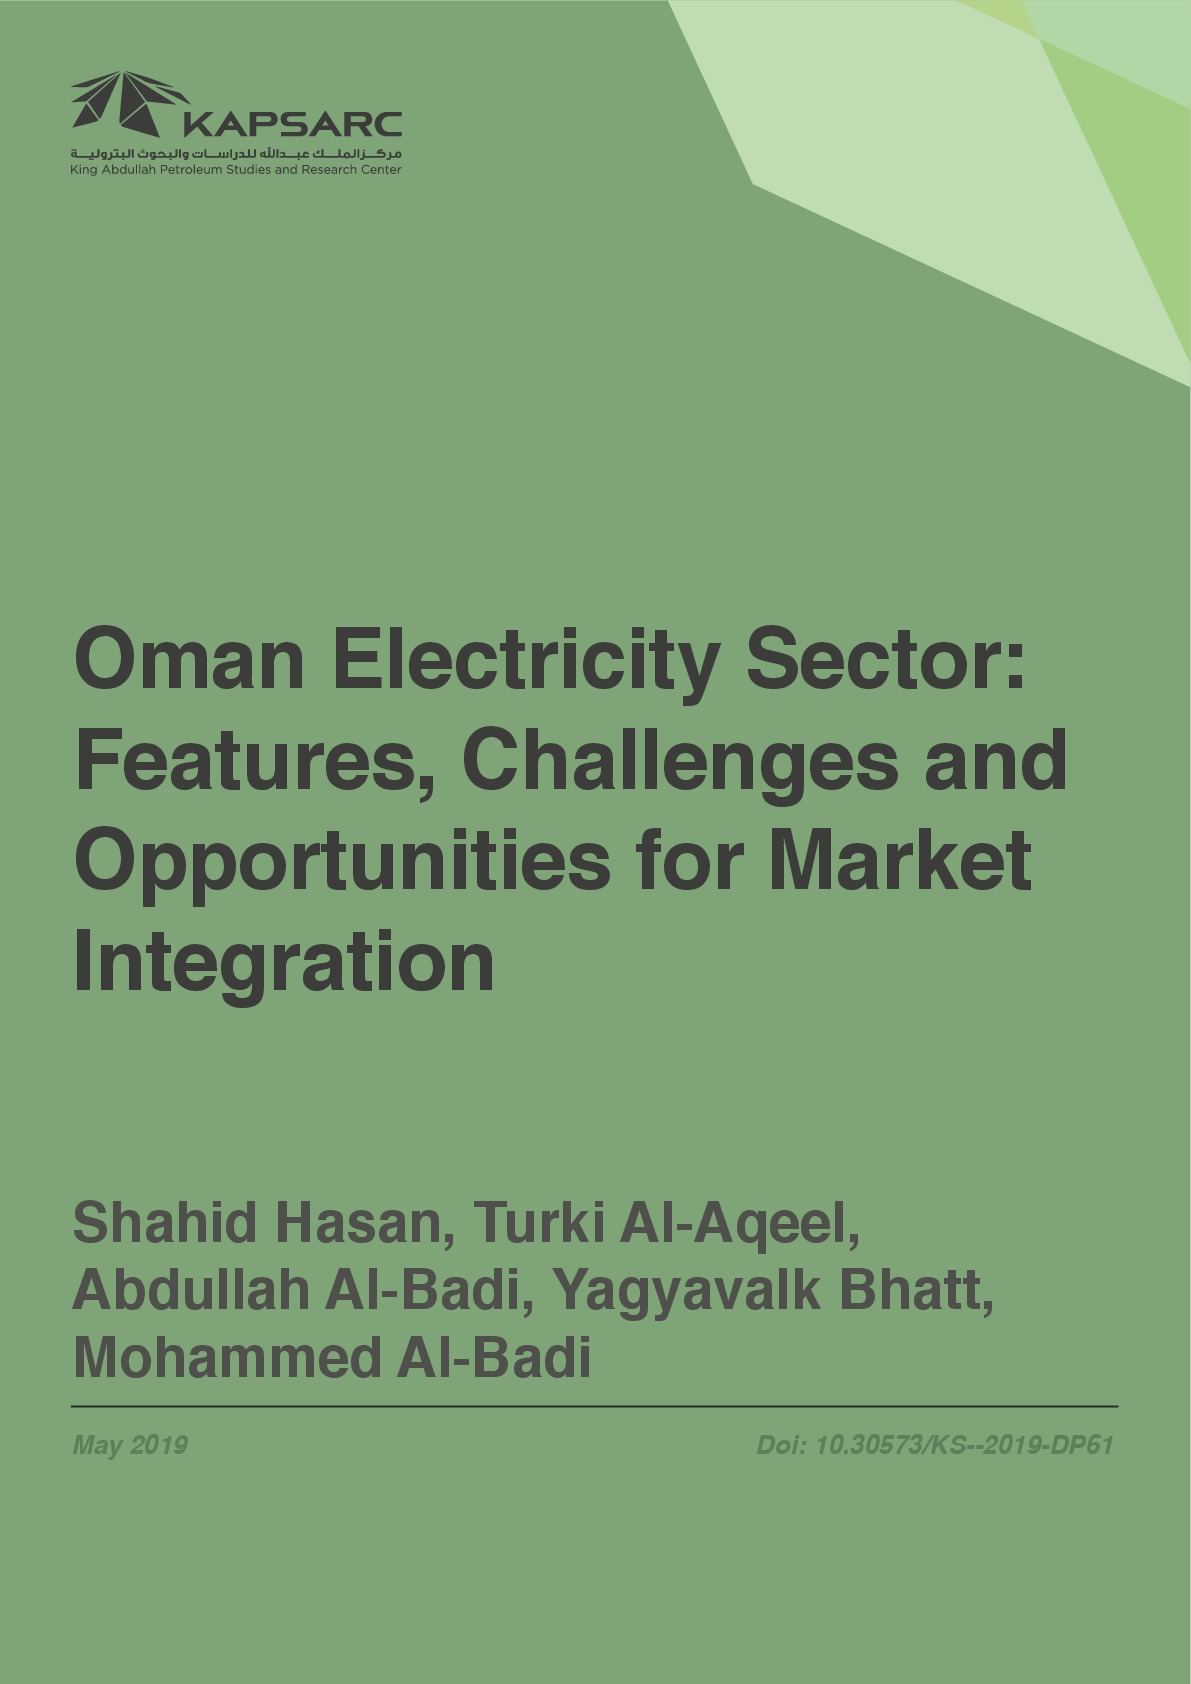 Oman Electricity Sector: Features, Challenges and Opportunities for Market Integration